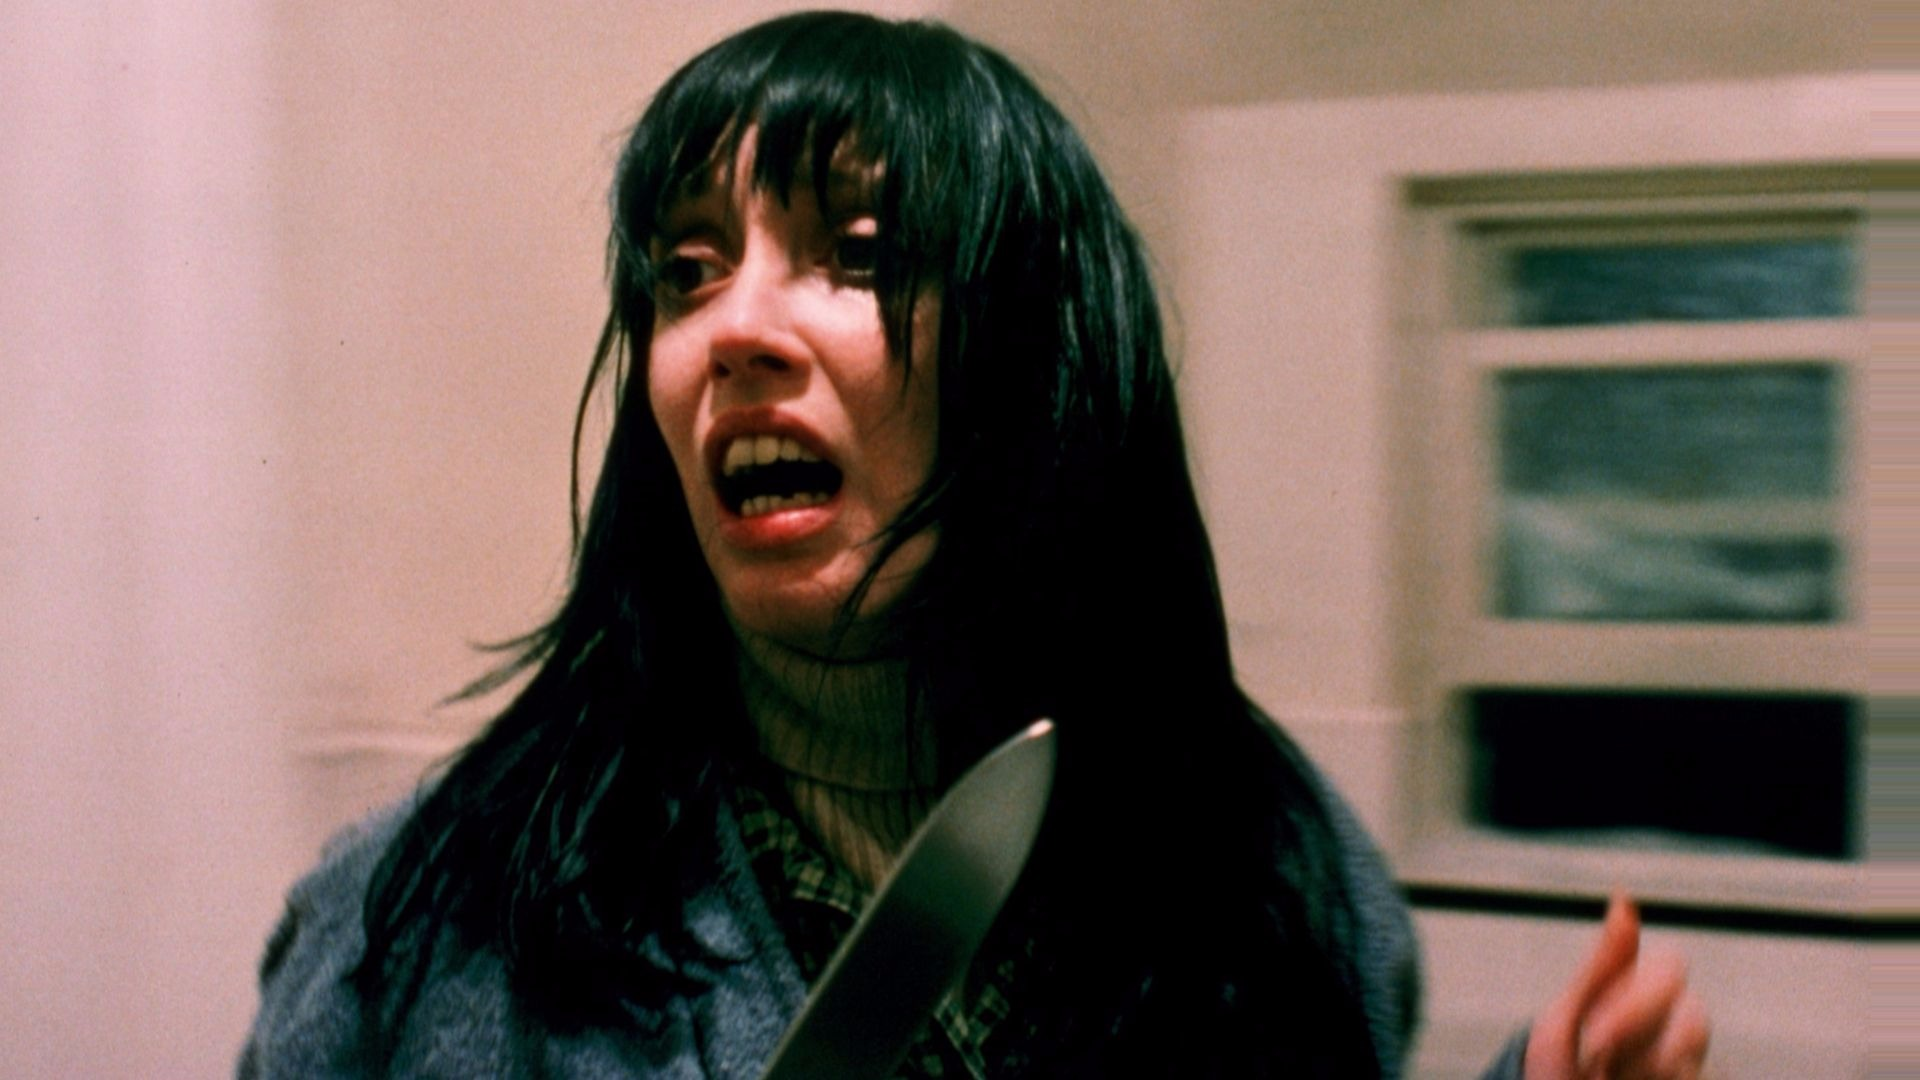 The Shining's Shelley Duvall.